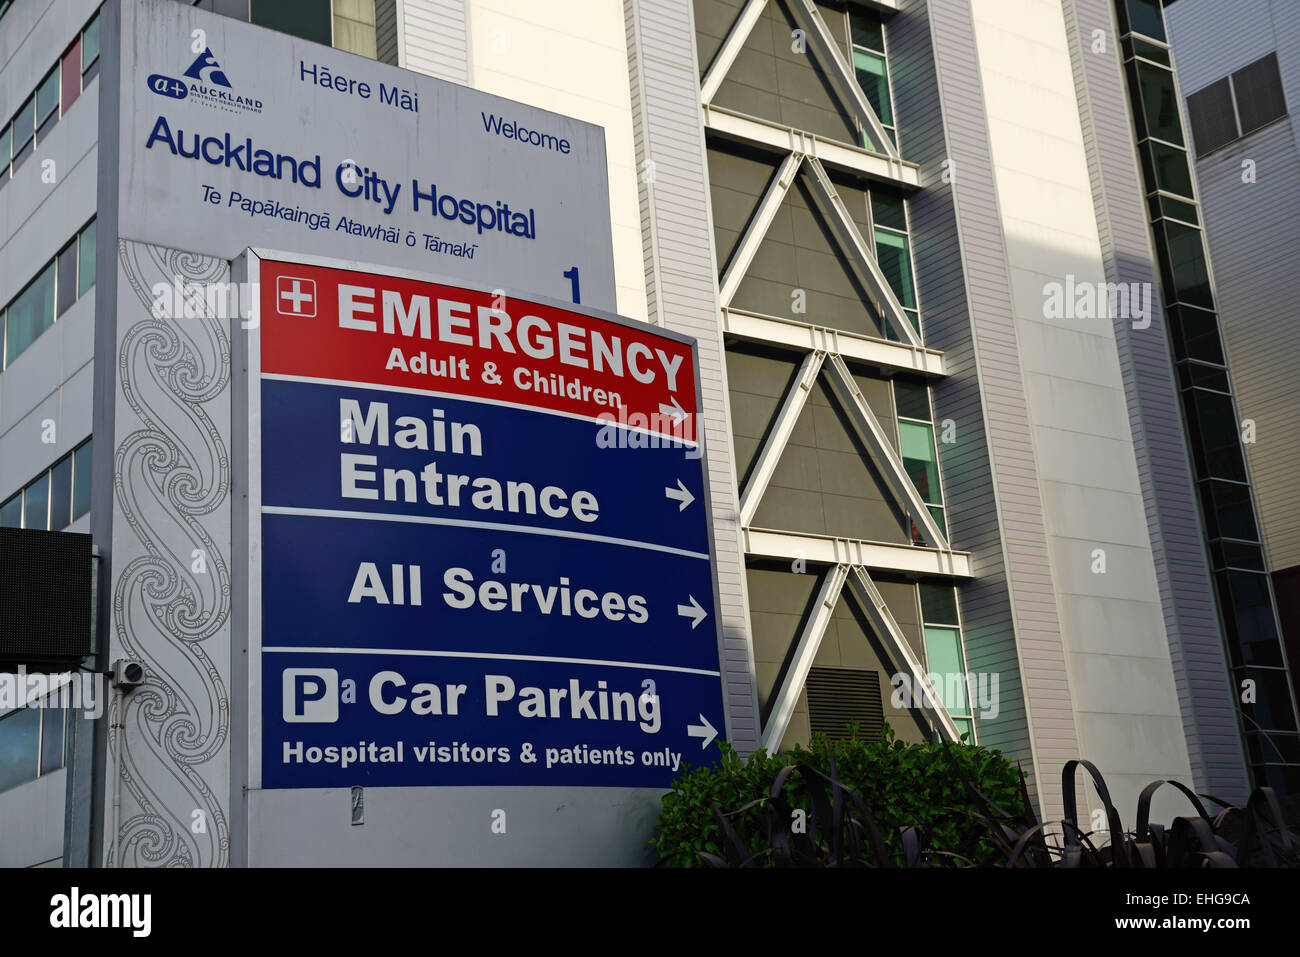 Signage for the entrance to Auckland City Hospital, New Zealand - Stock Image